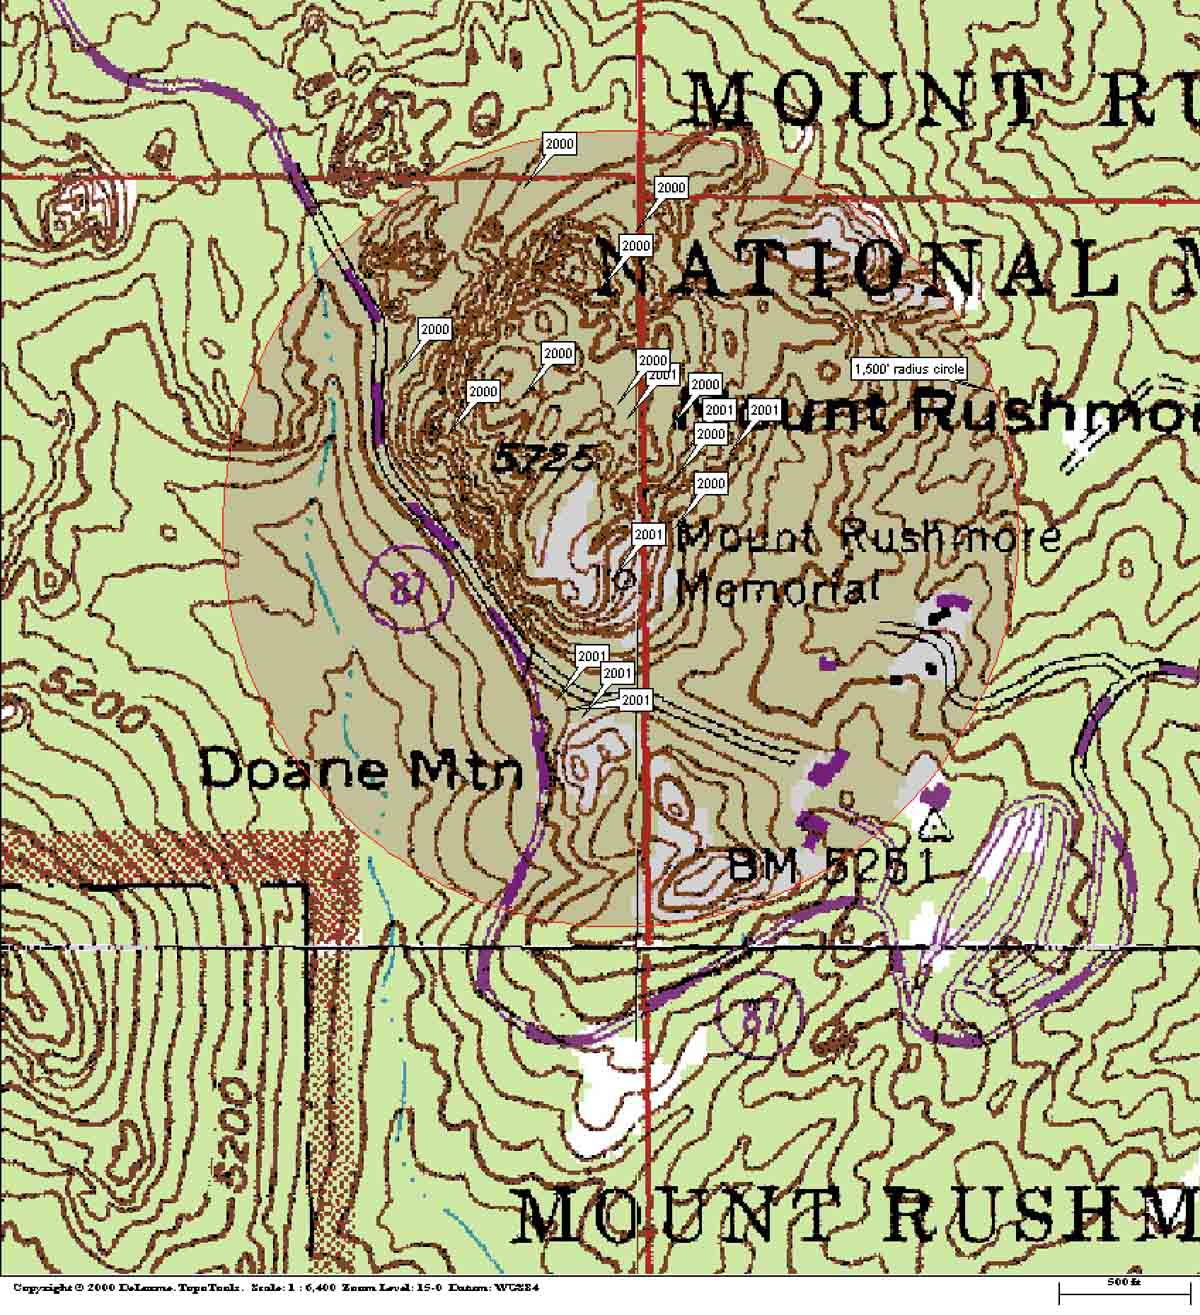 map location fires Mount Rushmore fireworks